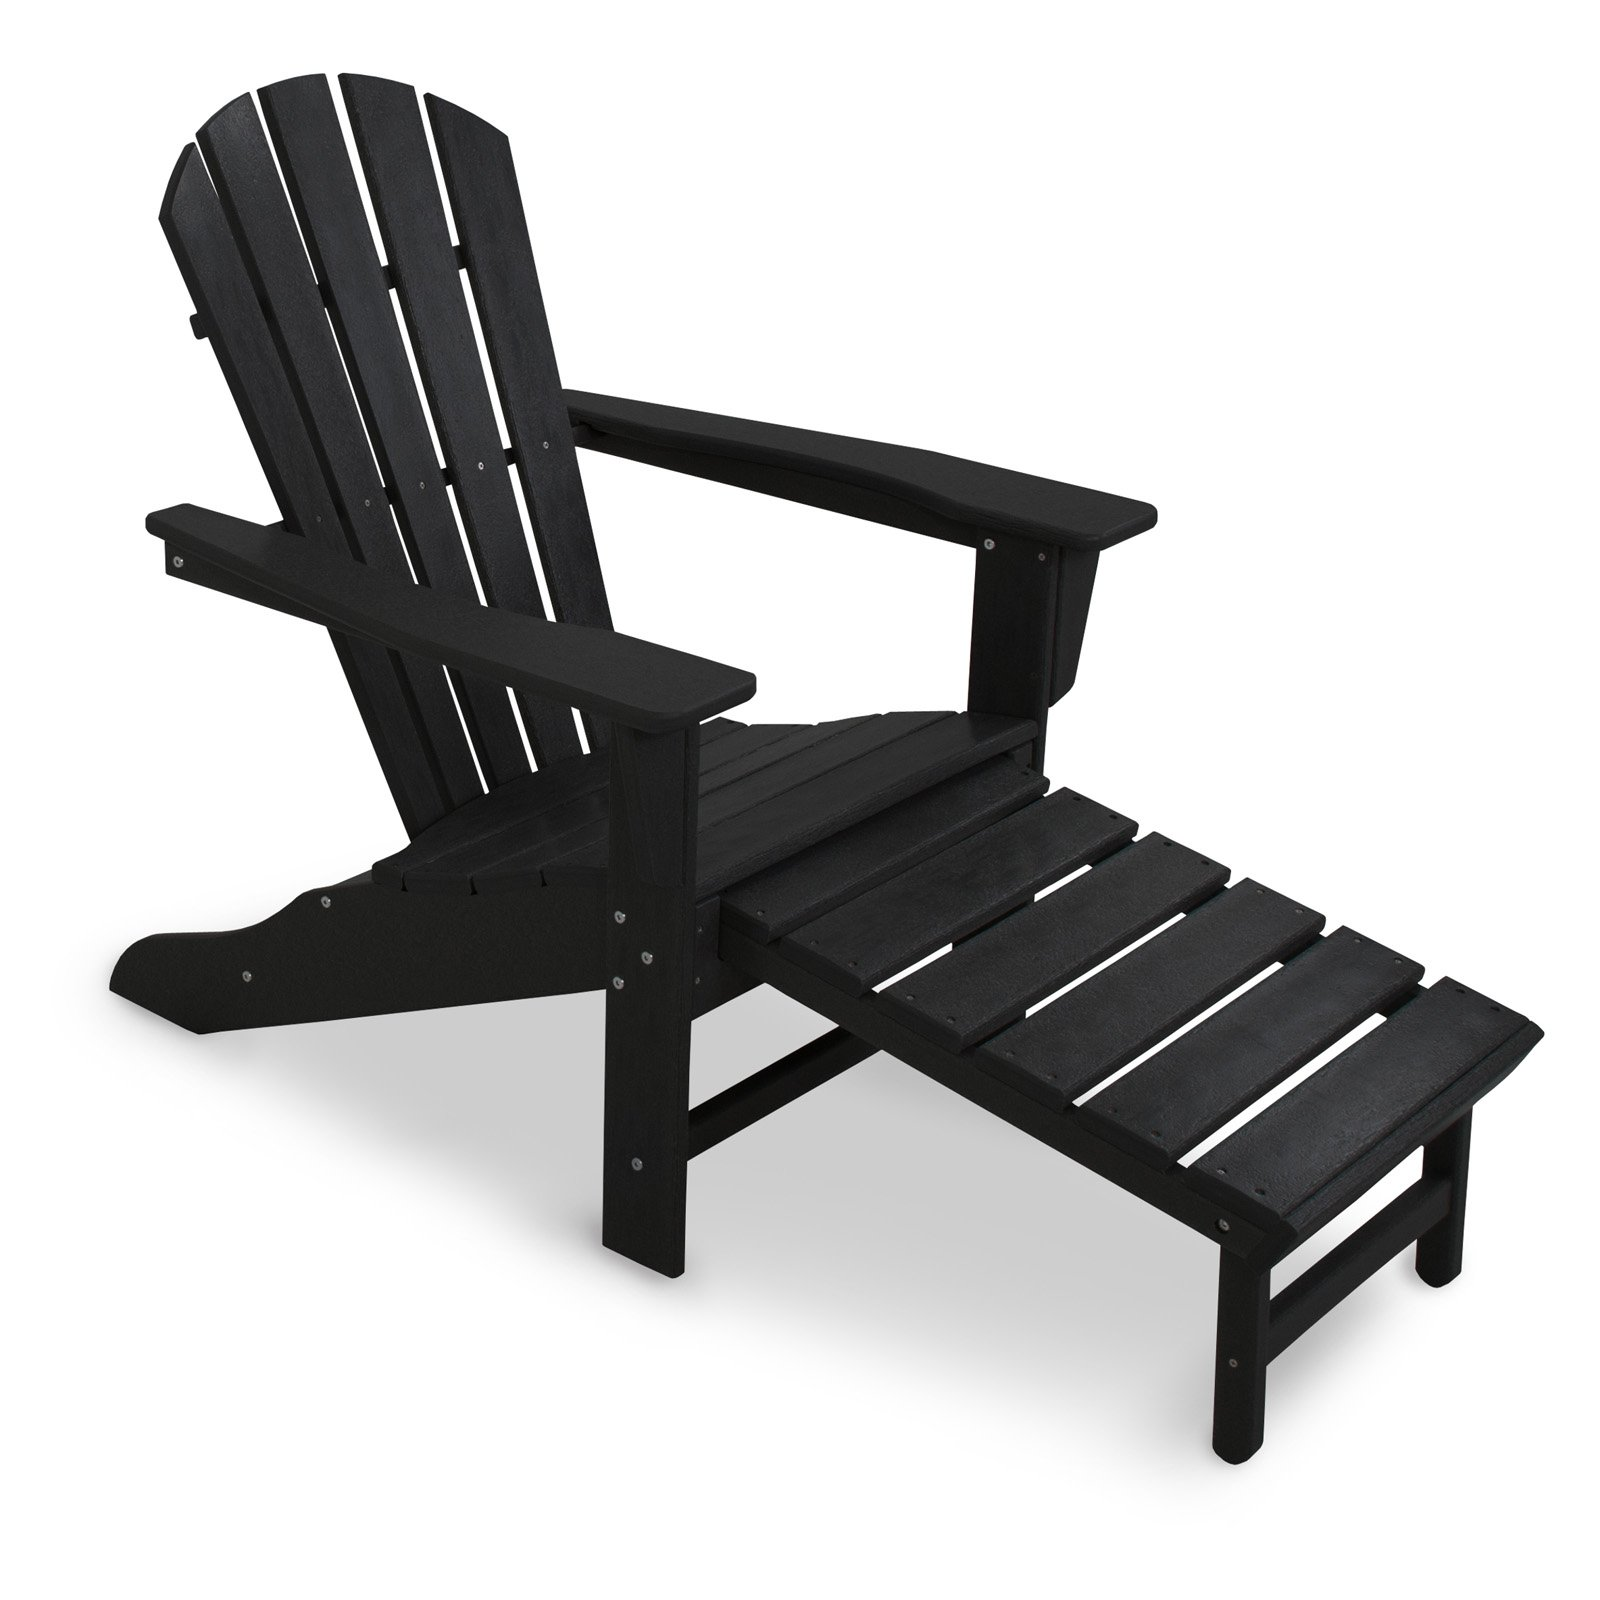 POLYWOOD Recycled Plastic Big Daddy Adirondack Chair with Pull